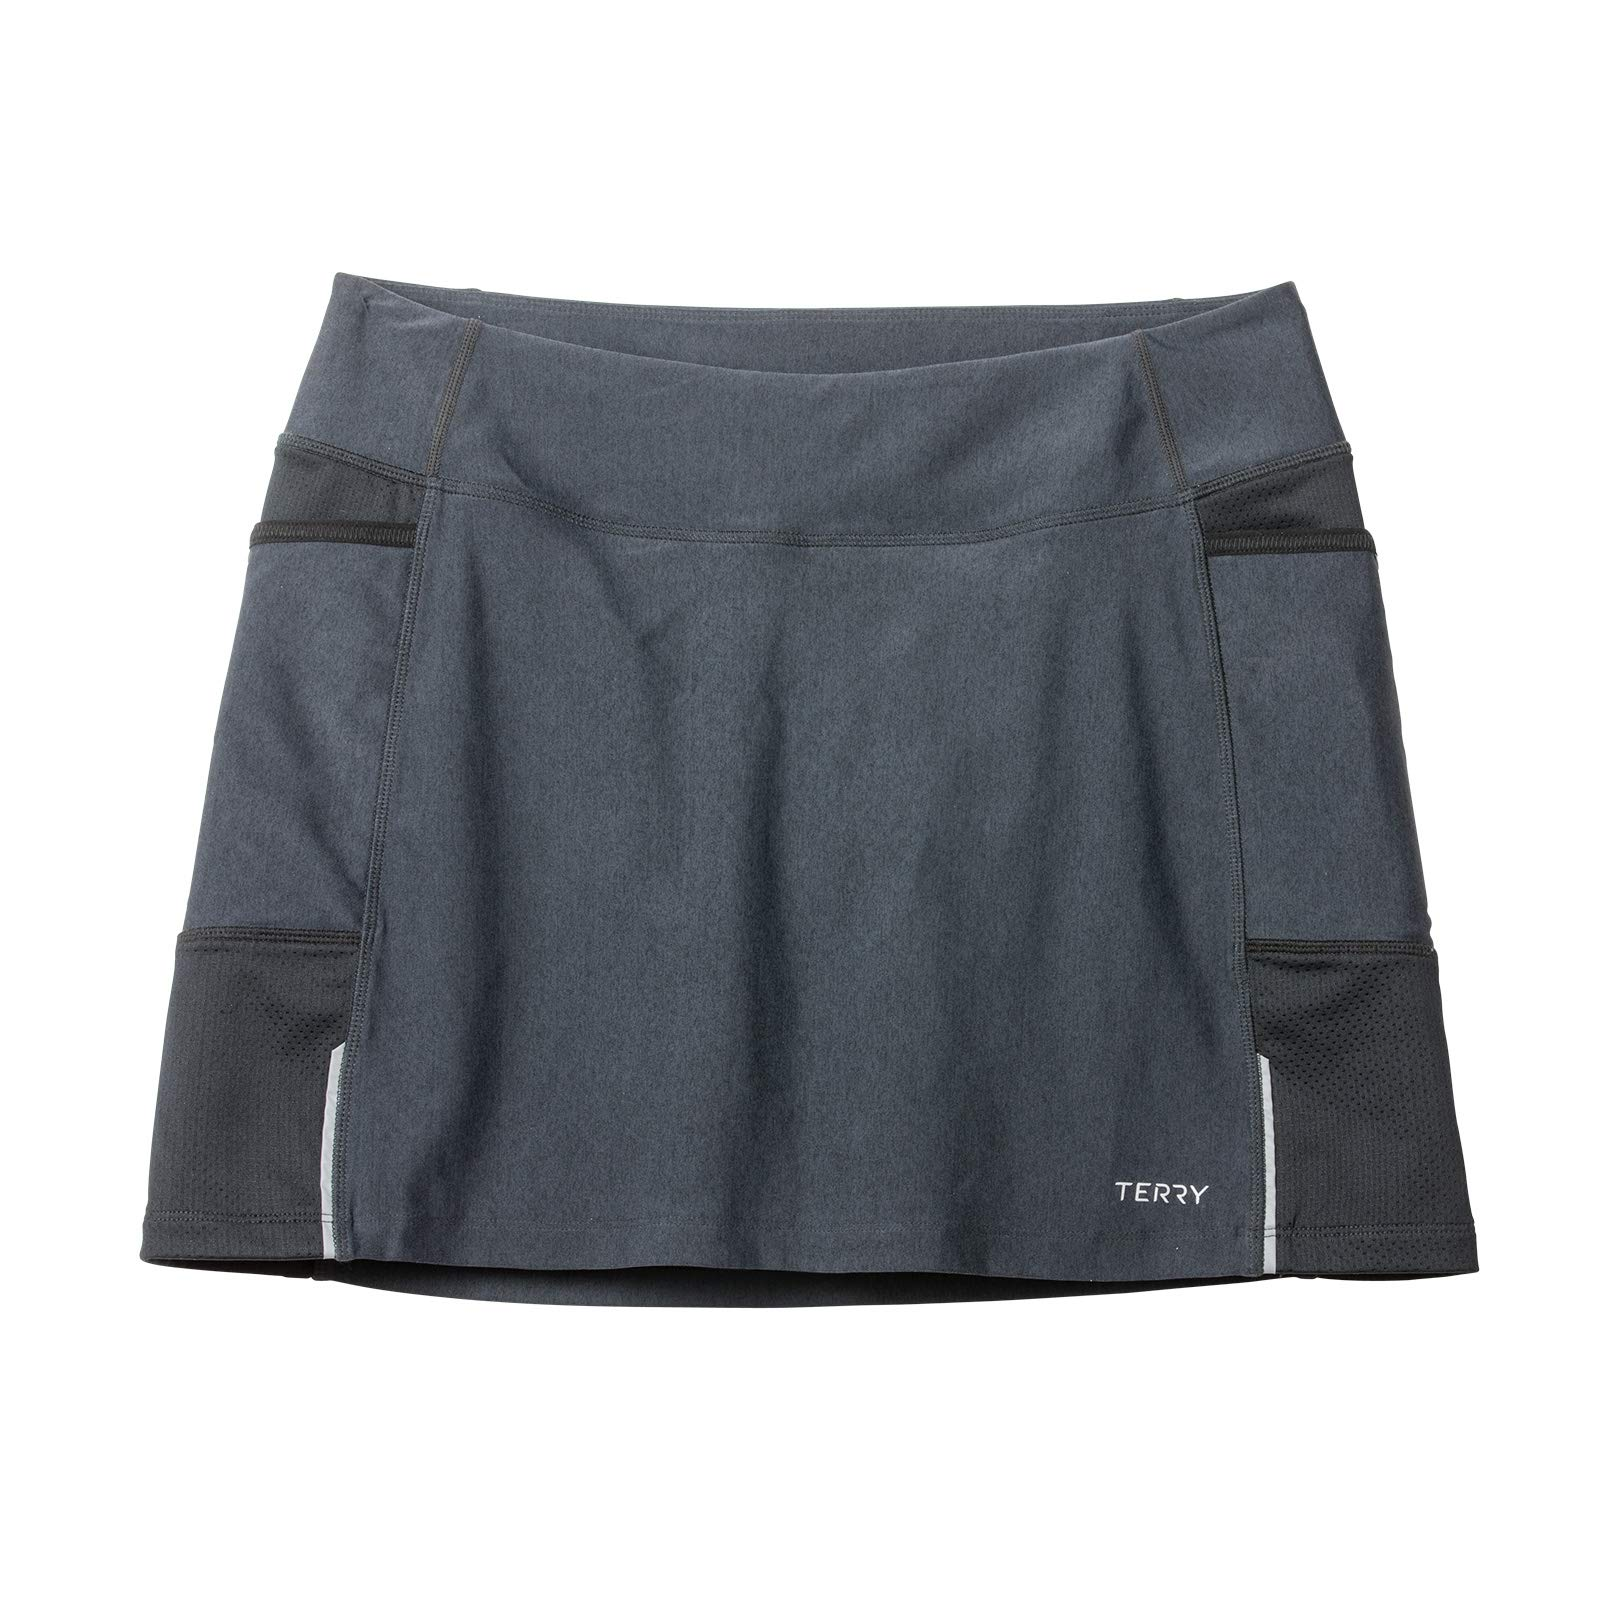 Terry Fixie Skort Women's Cycling Athletic Sport Skirt Stretch Wrap with Padded Chamois Liner Bike Shorts - Black Pepper - XX Large by Terry